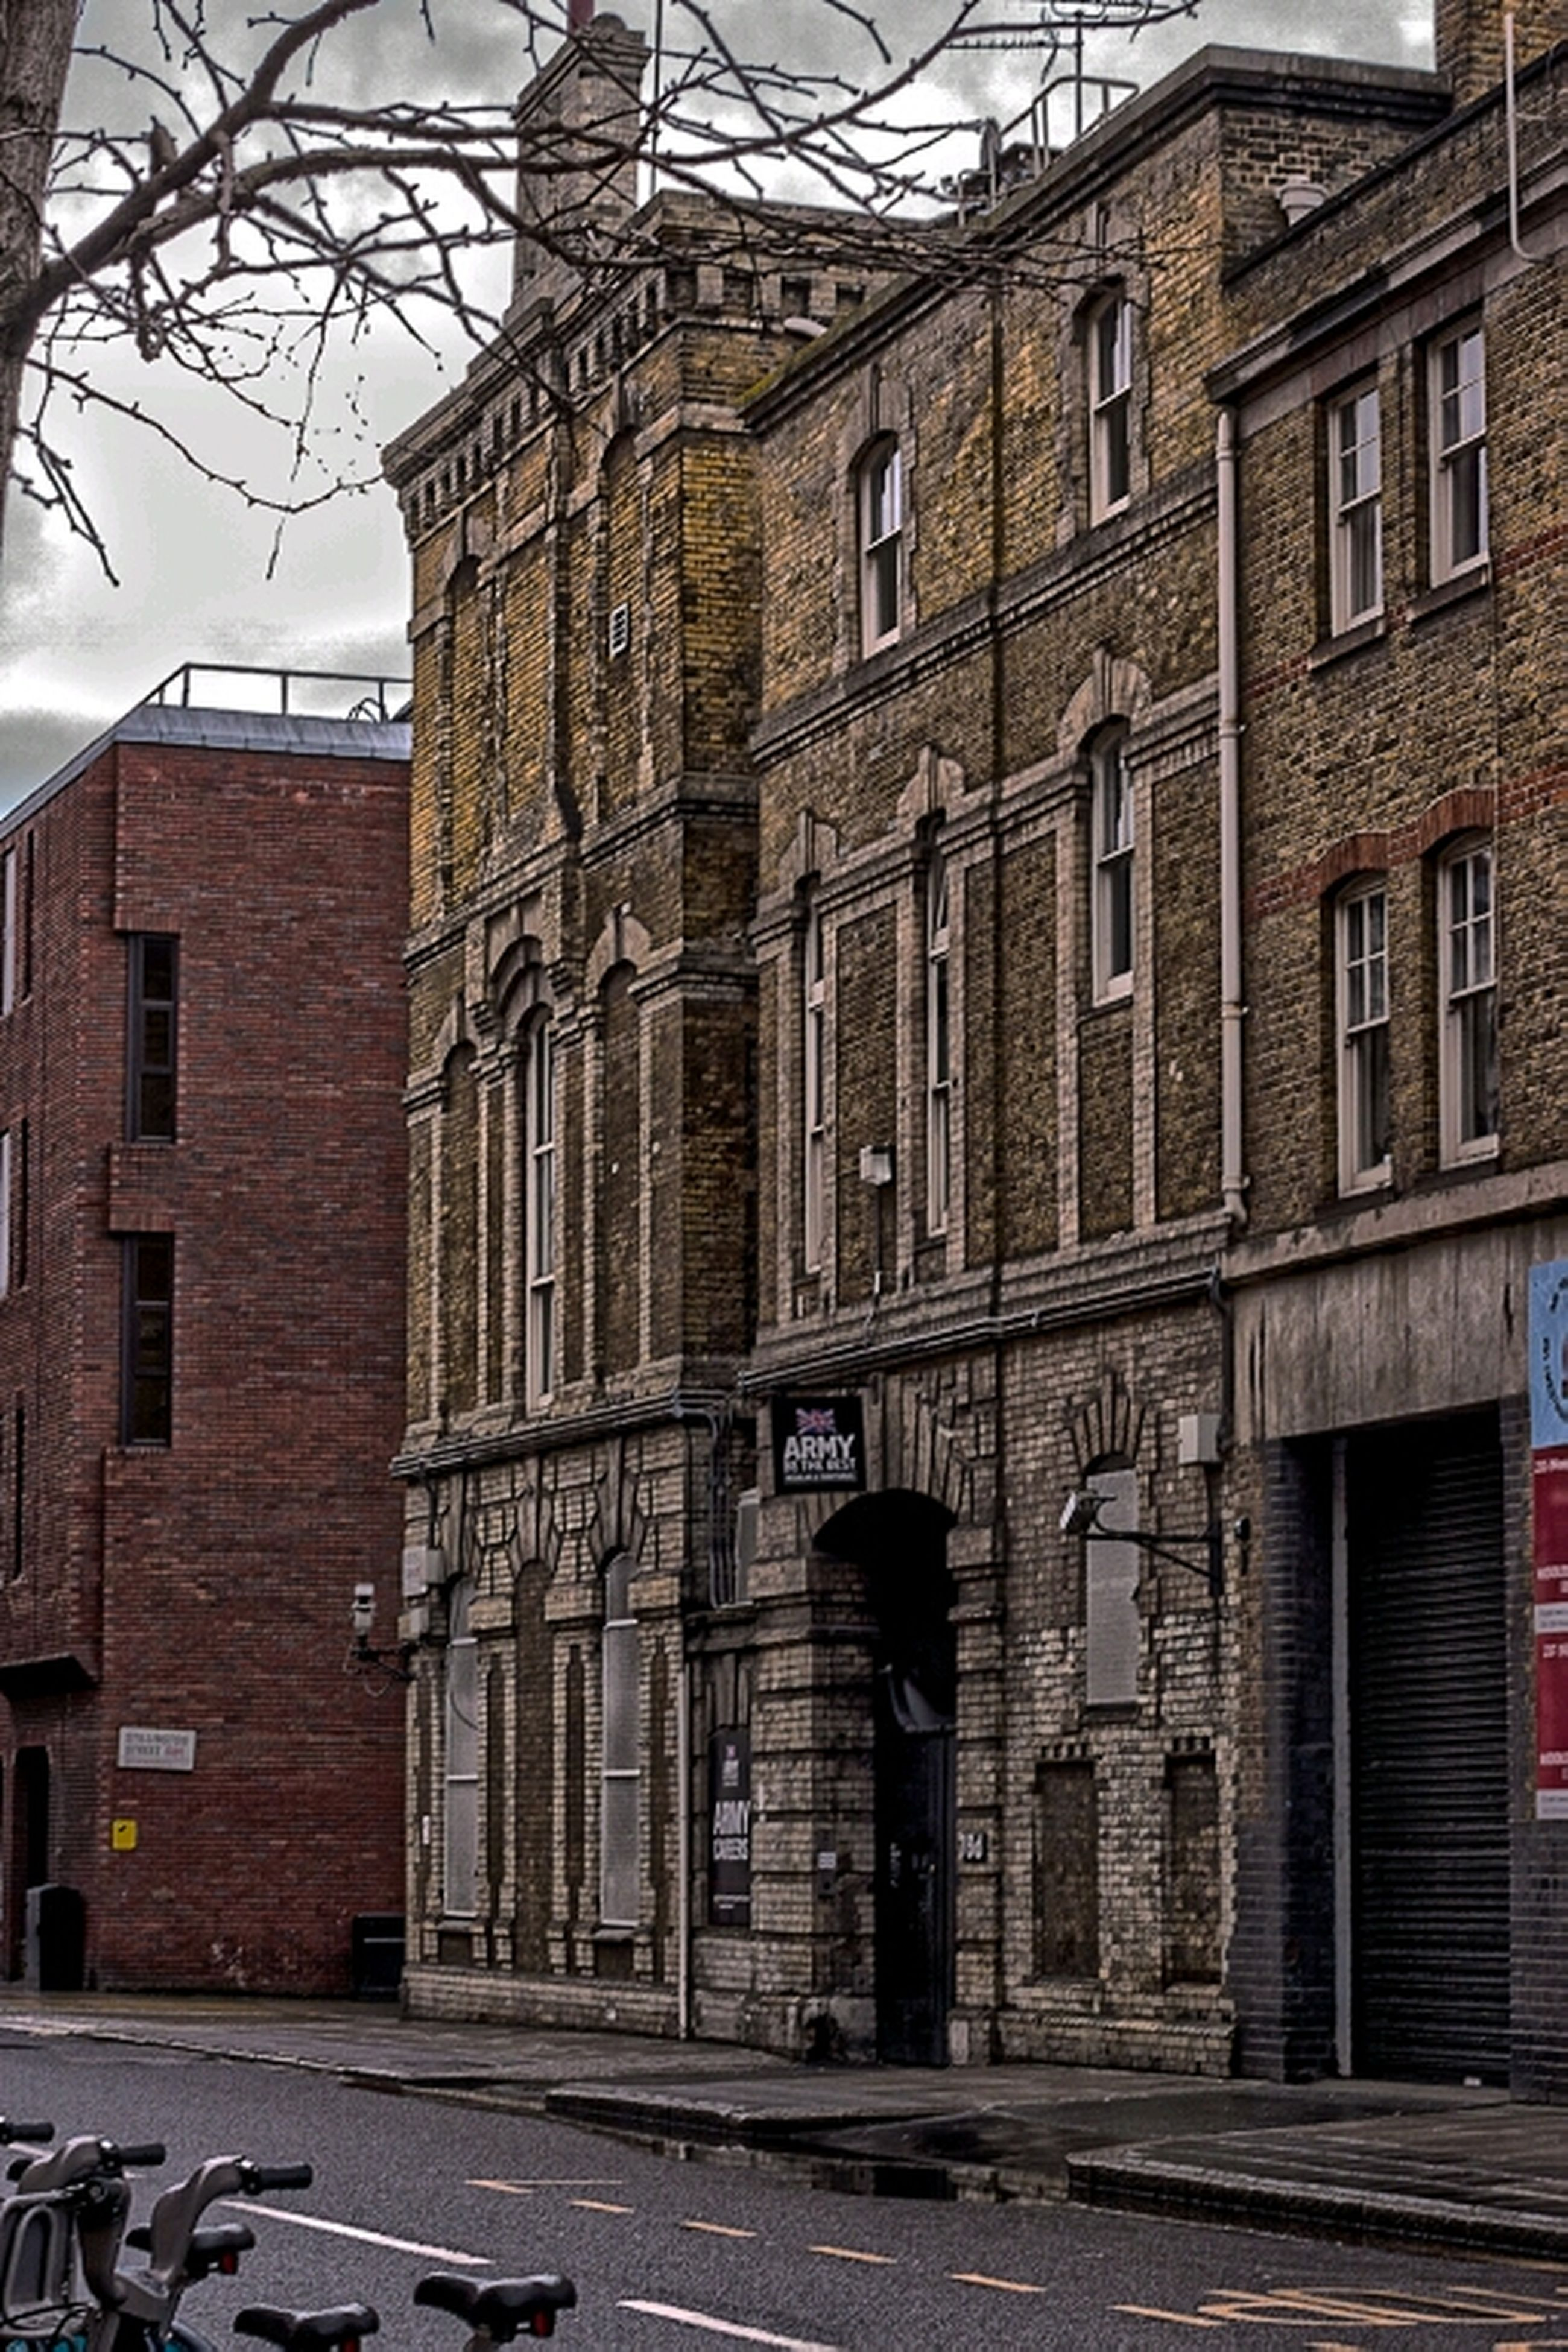 architecture, building exterior, built structure, building, city, bare tree, window, brick wall, low angle view, street, residential building, day, residential structure, outdoors, sky, no people, power line, old, cable, wall - building feature